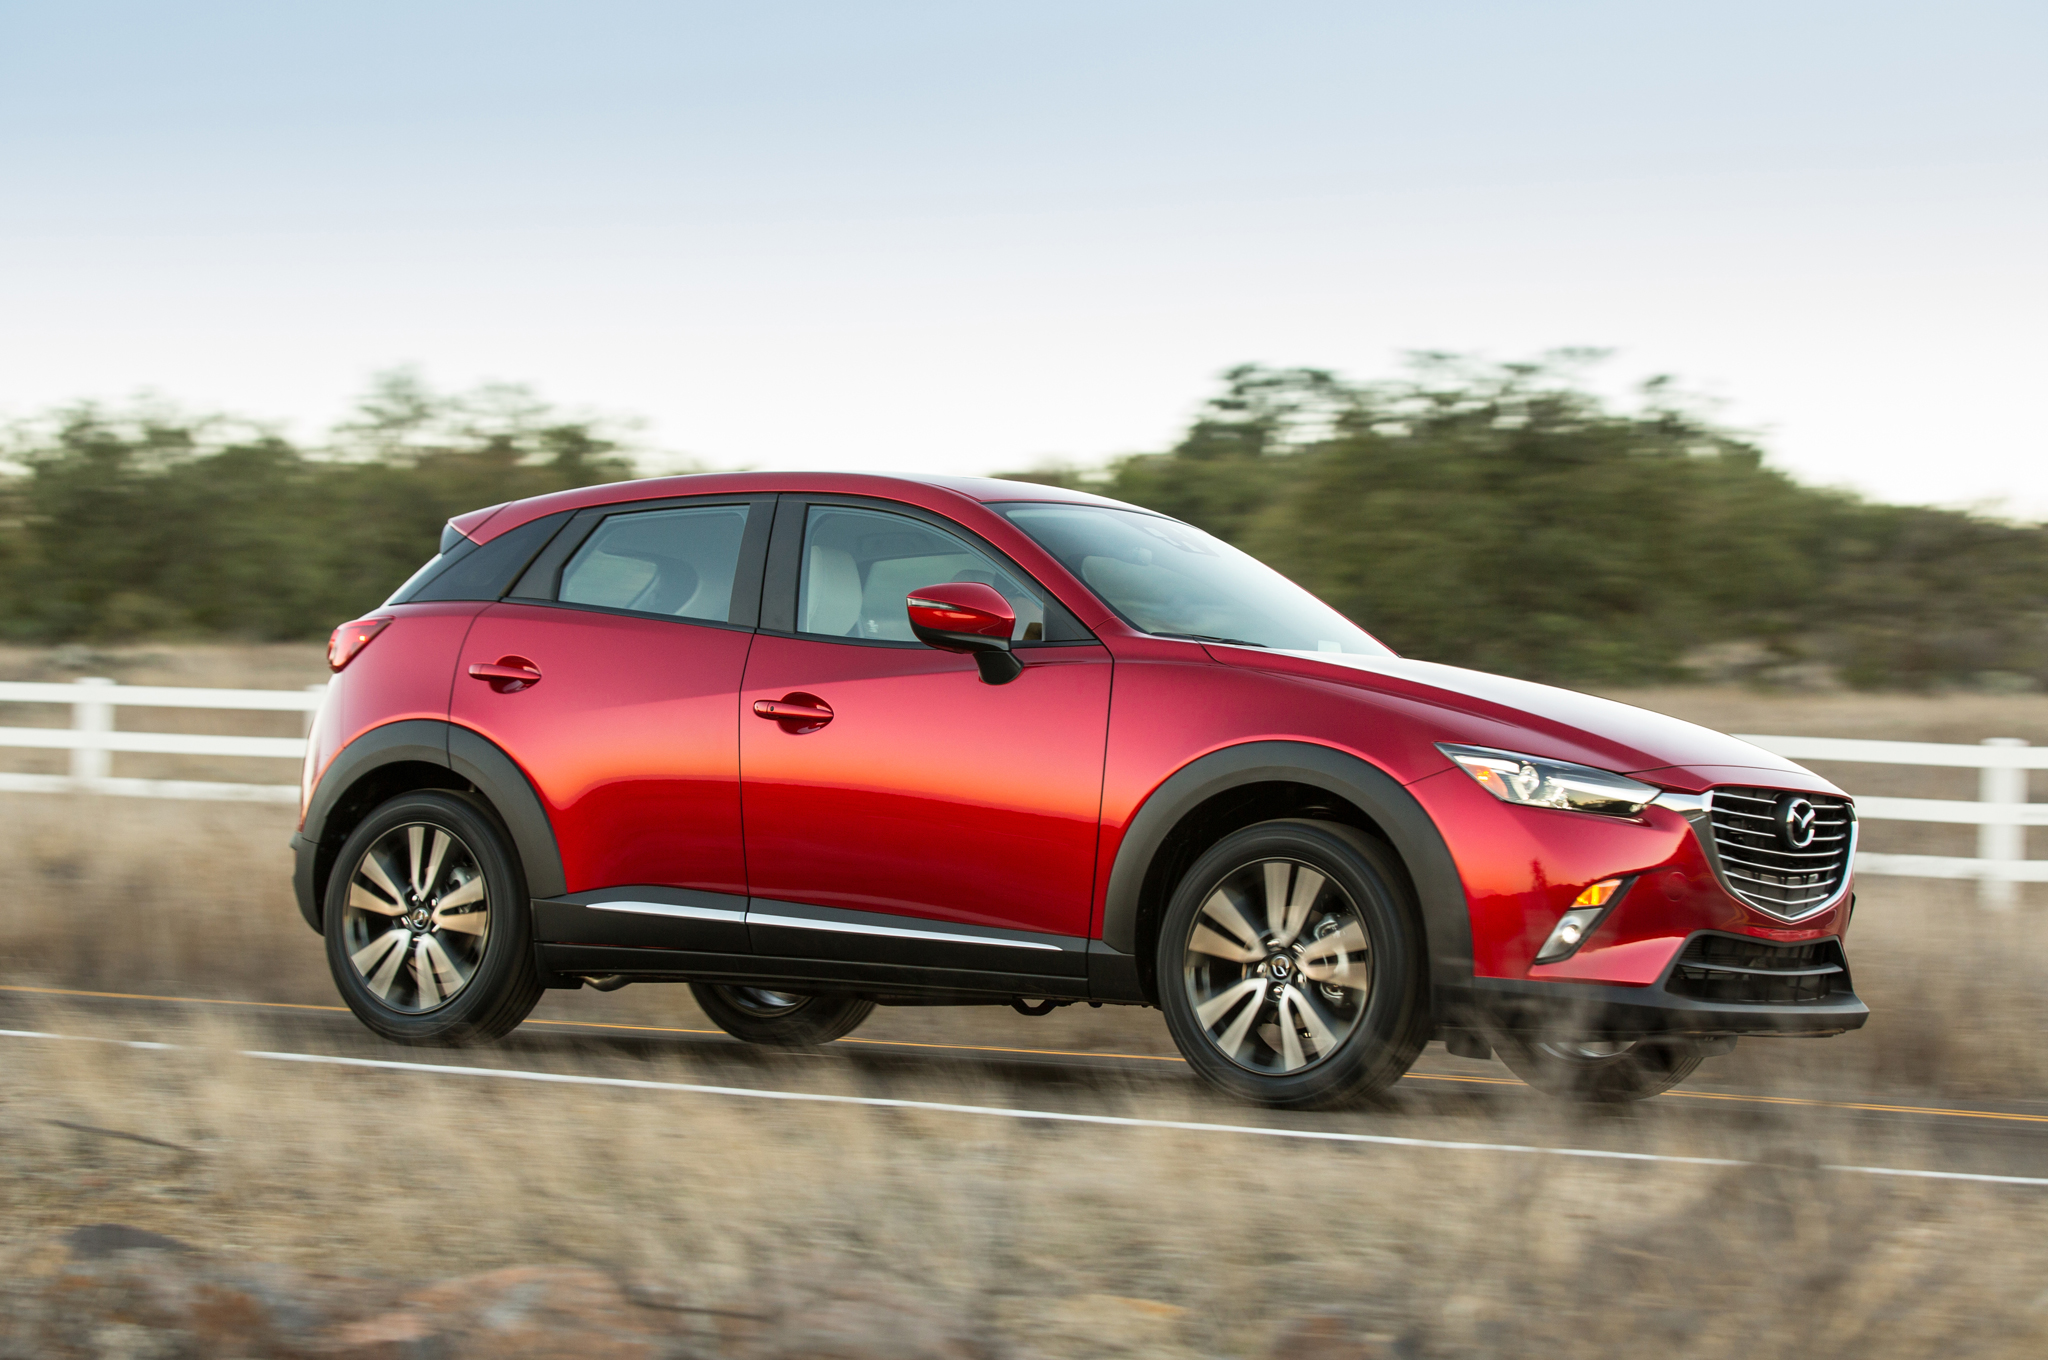 Next 2016 Mazda CX-3 Performance Test